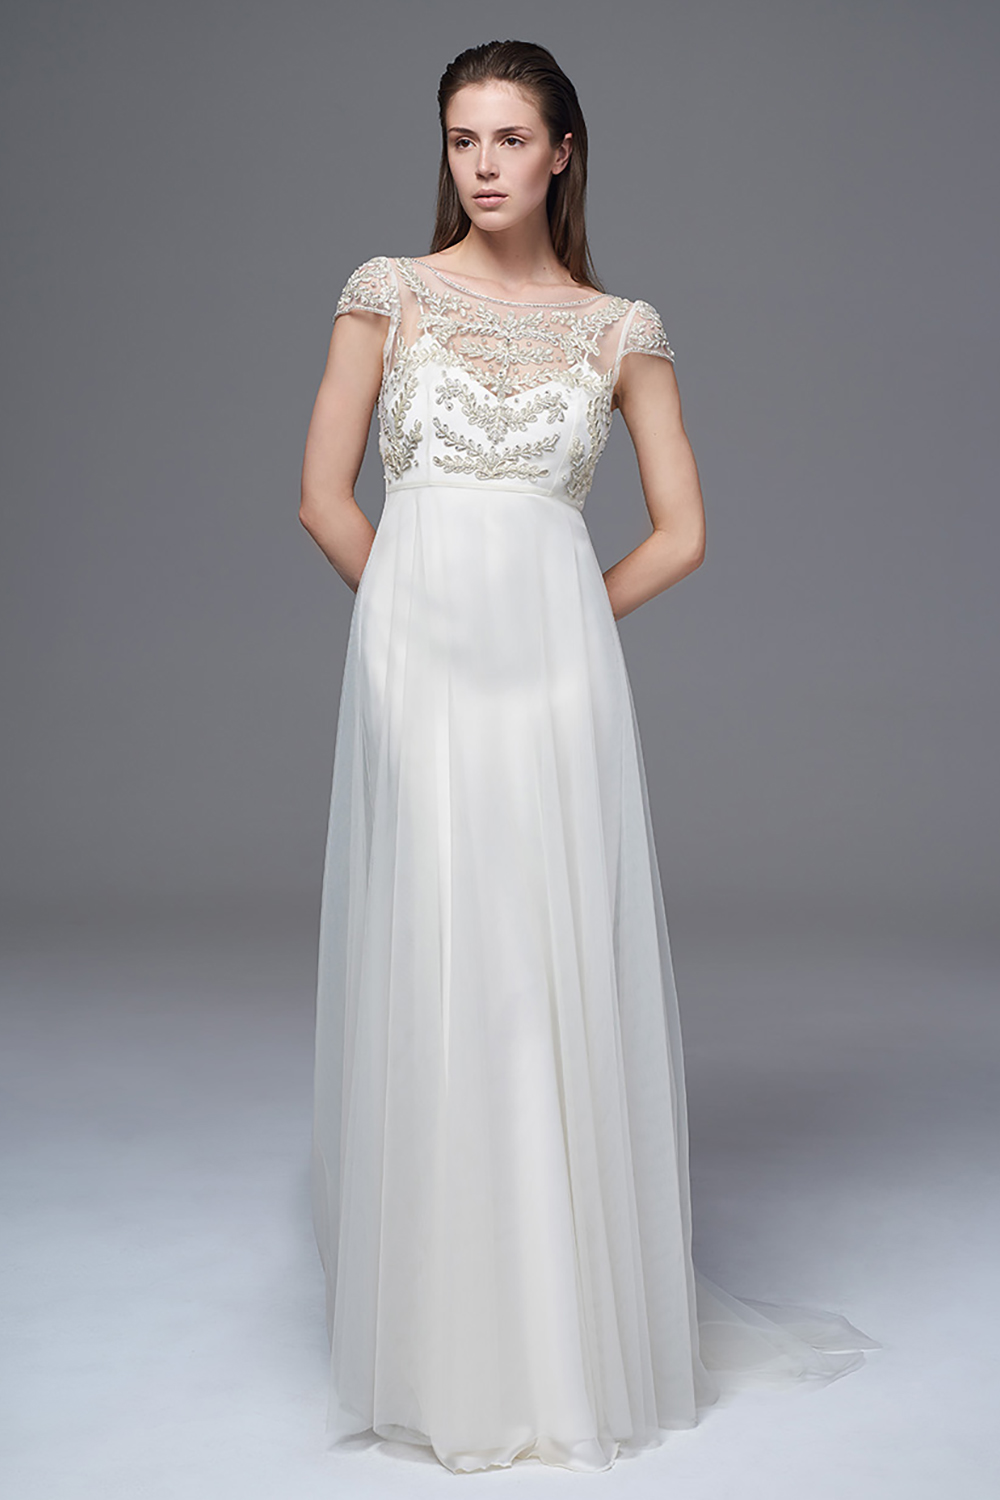 THE ELAINE DRESS WITH A HAND BEADED AND EMBROIDERED BODICE WITH A LOW V BACK WORN WITH THE CLASSIC IRIS SLIP. BRIDAL WEDDING DRESS BY HALFPENNY LONDON